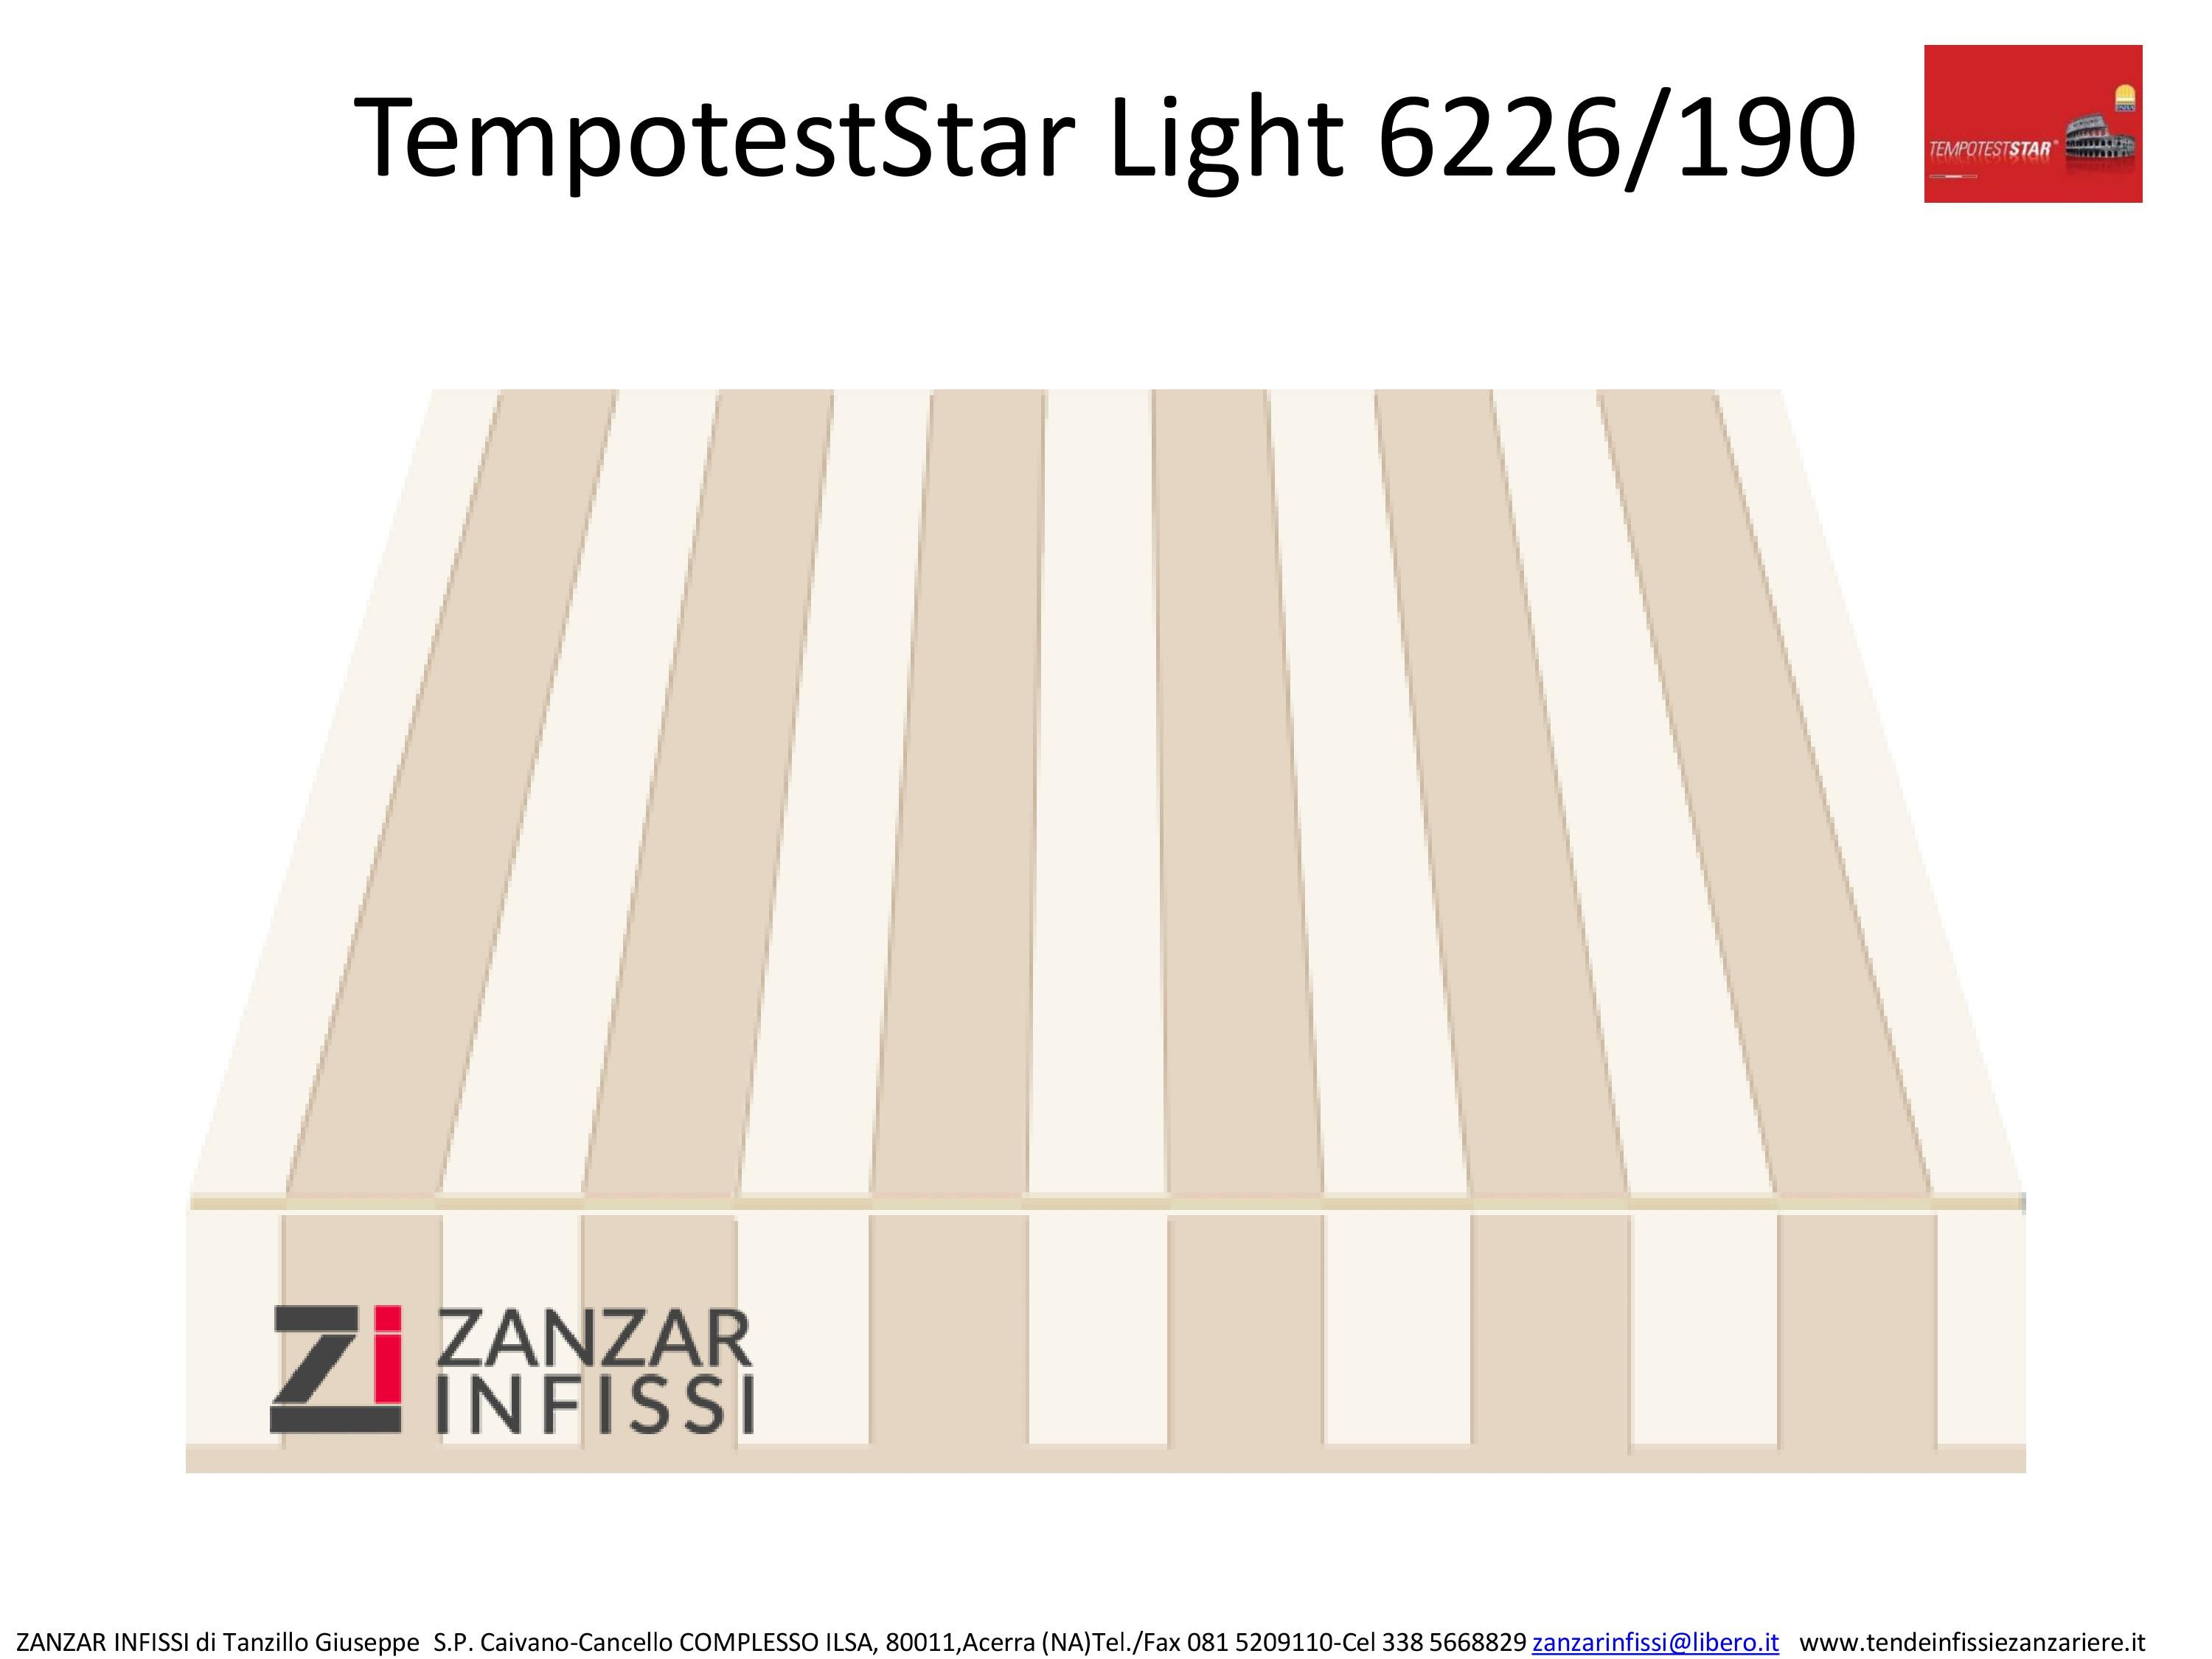 Tempotest star light 6226/190